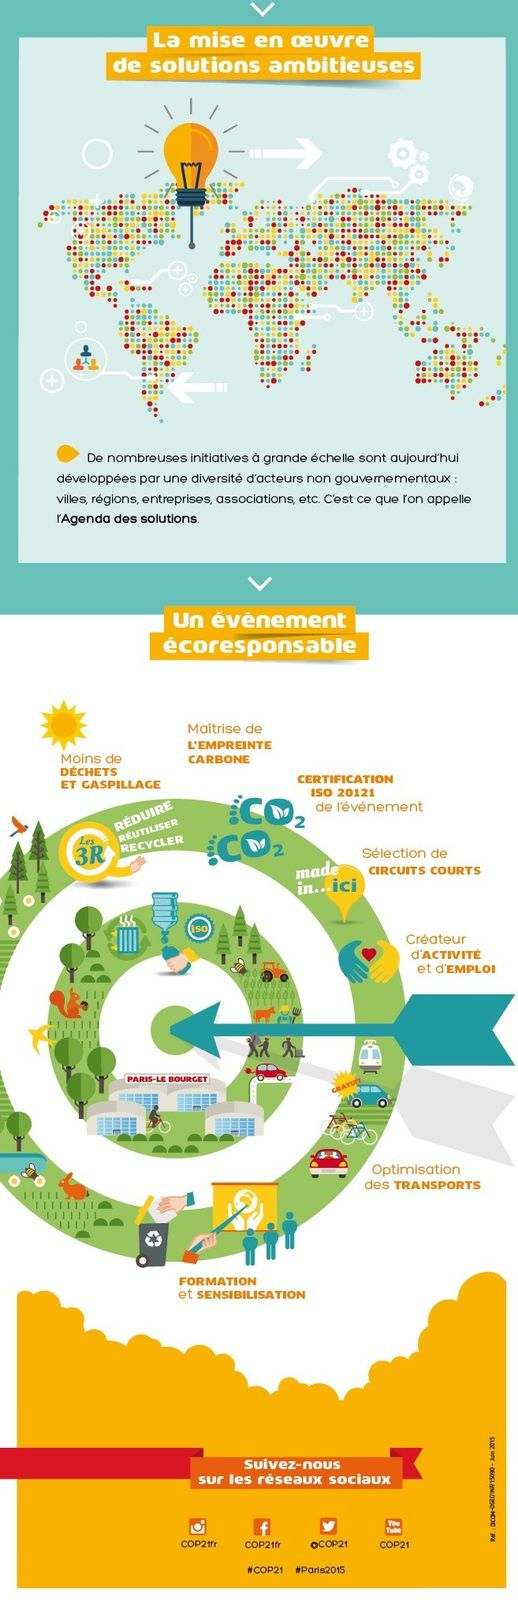 source : http://www.cop21.gouv.fr/fr/boite-outils/infographie